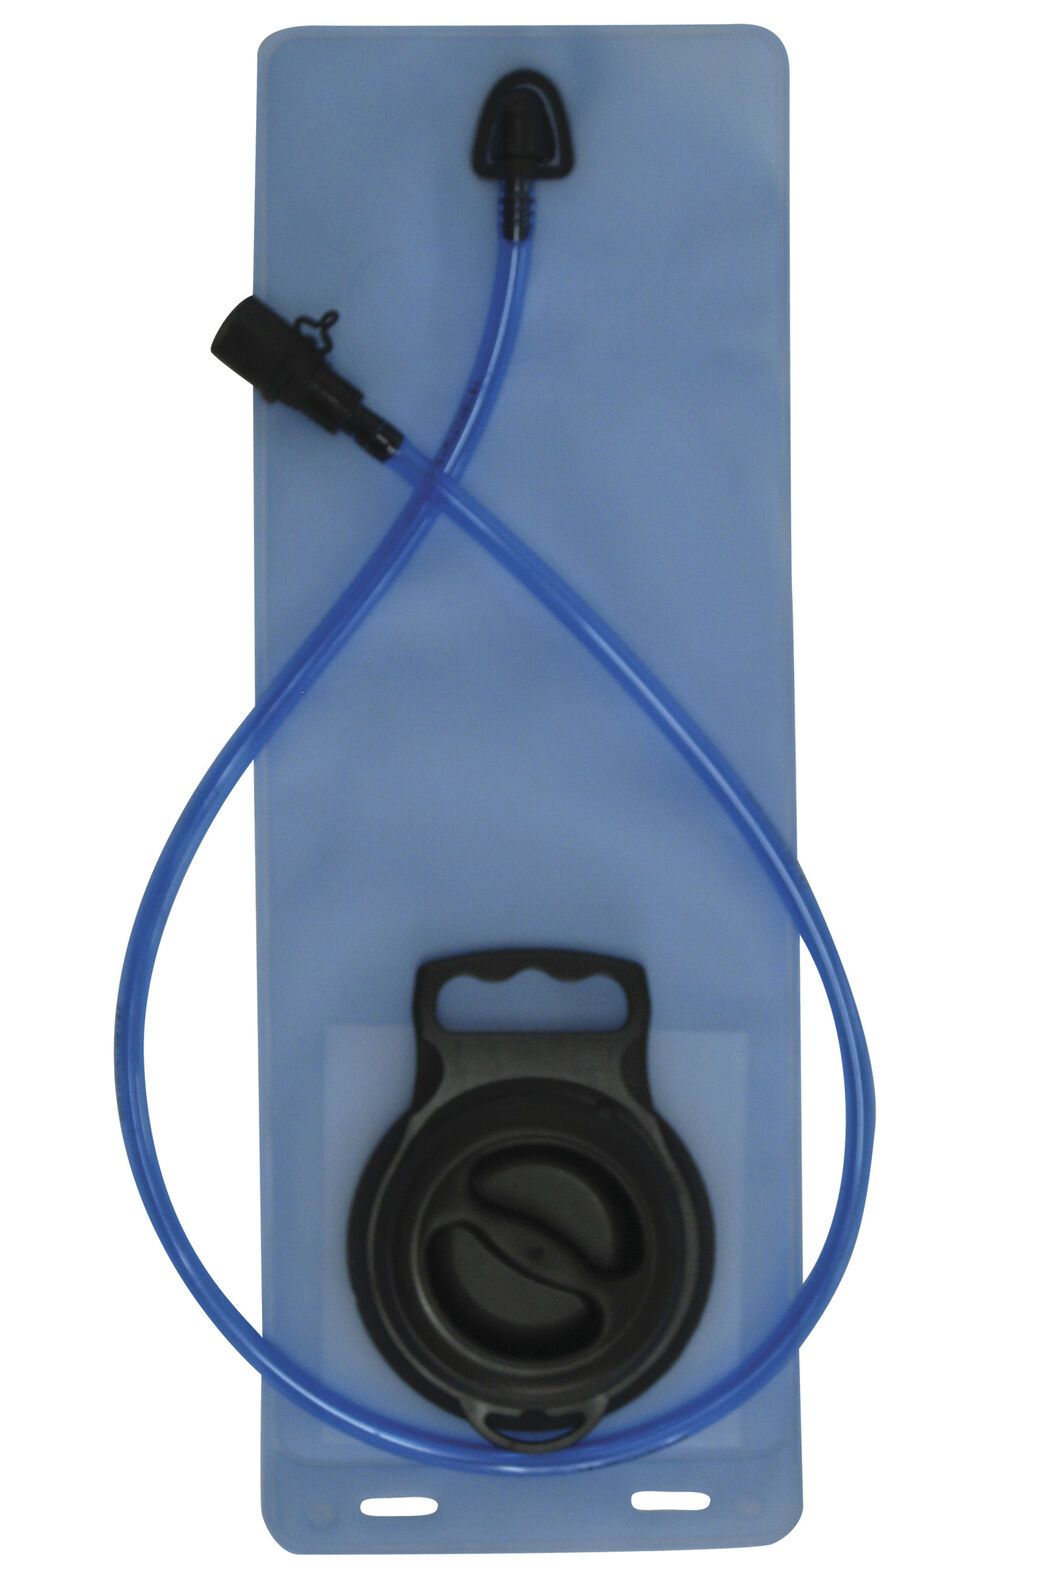 Macpac 2L Hydration Reservoir, None, hi-res